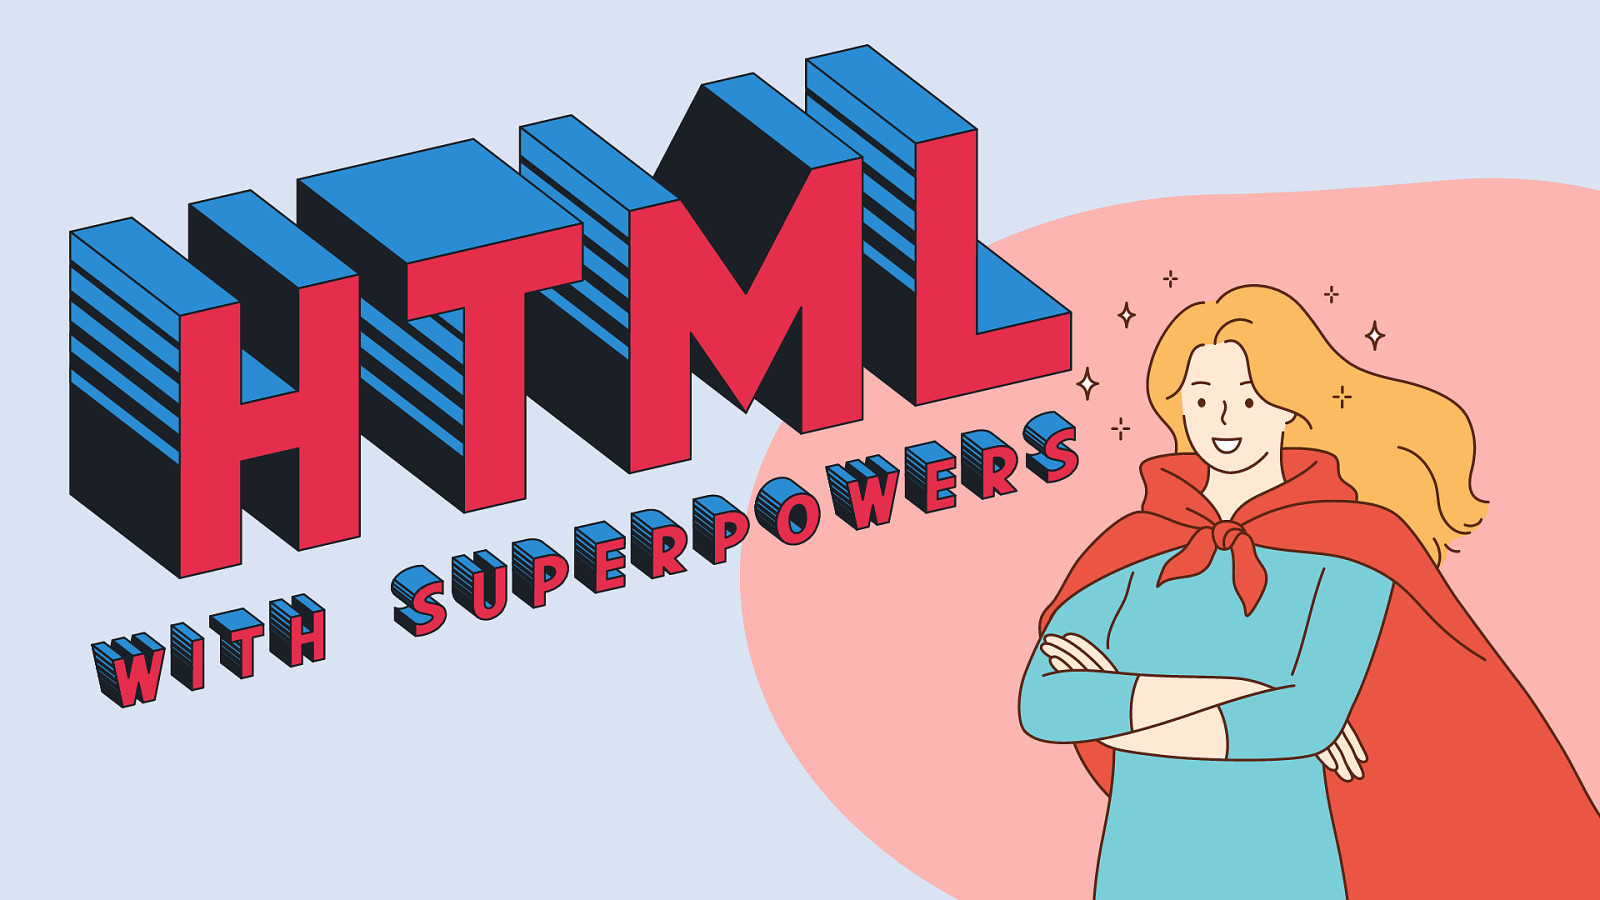 HTML with Superpowers